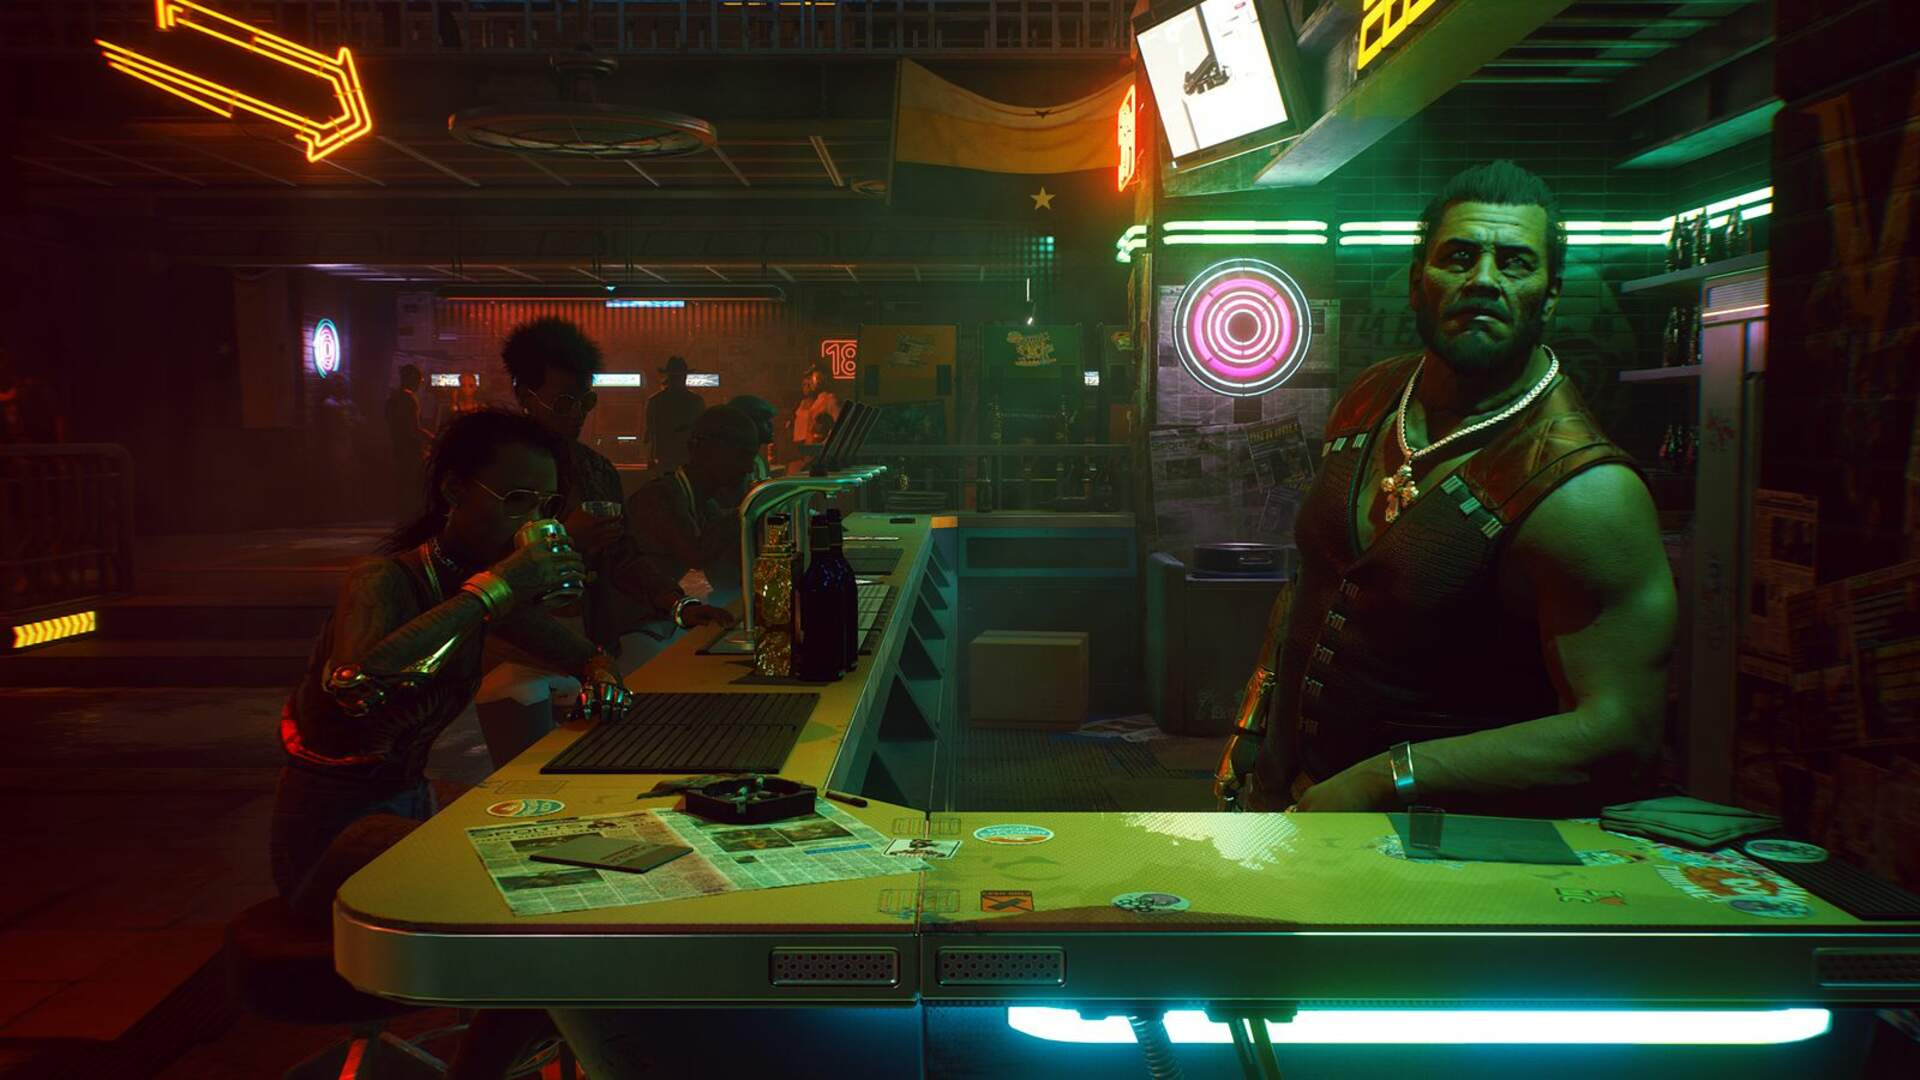 CD Projekt Red Apologizes For Not Showing Last-Gen Cyberpunk 2077 Before Launch, Offers Refunds [Update]